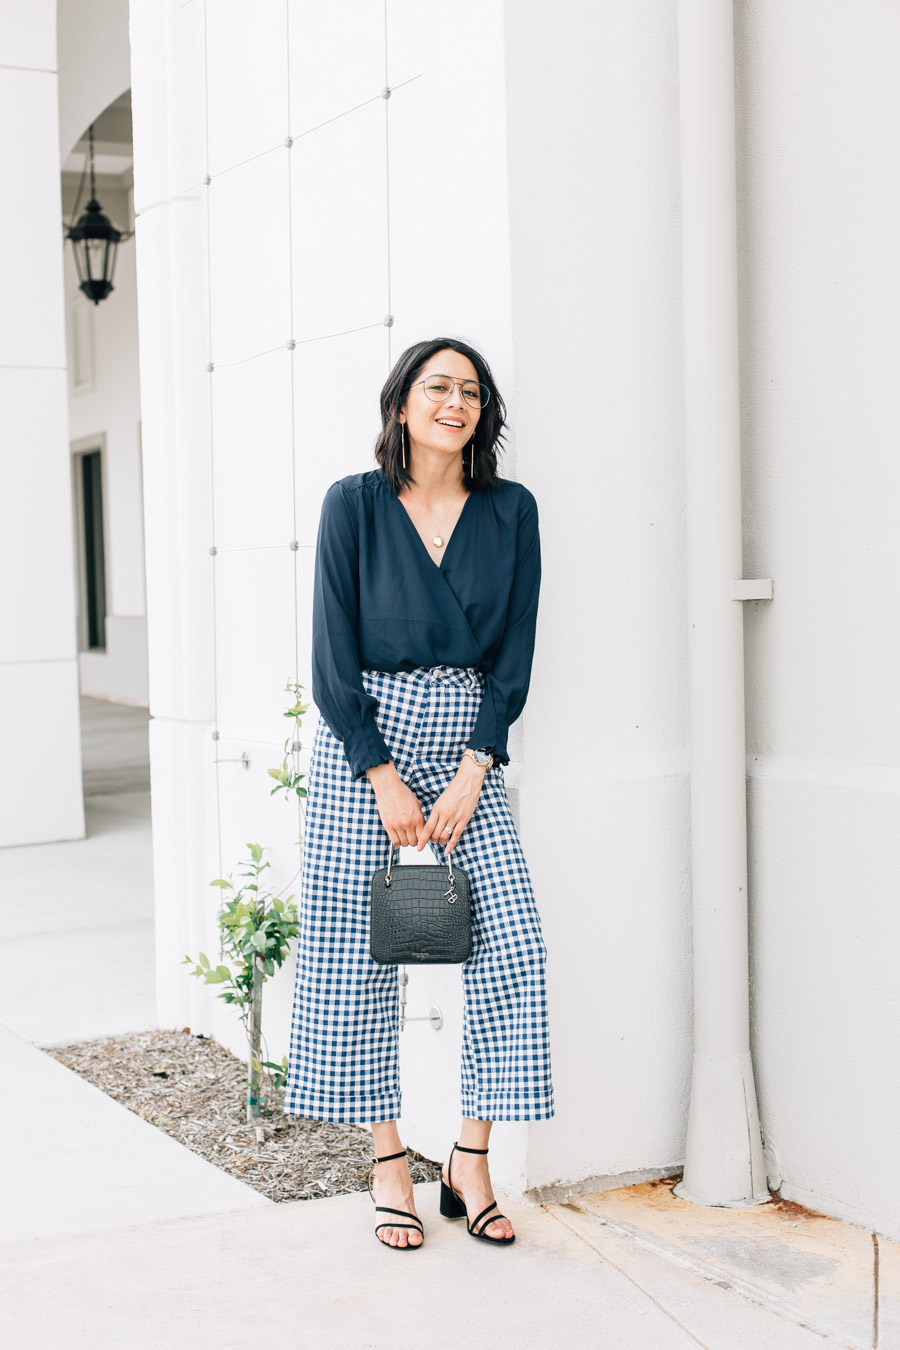 Lilly Beltran wearing wide leg gingham pants and navy wrap top for a chic office look + shares 10 bad habits you need to quit now.